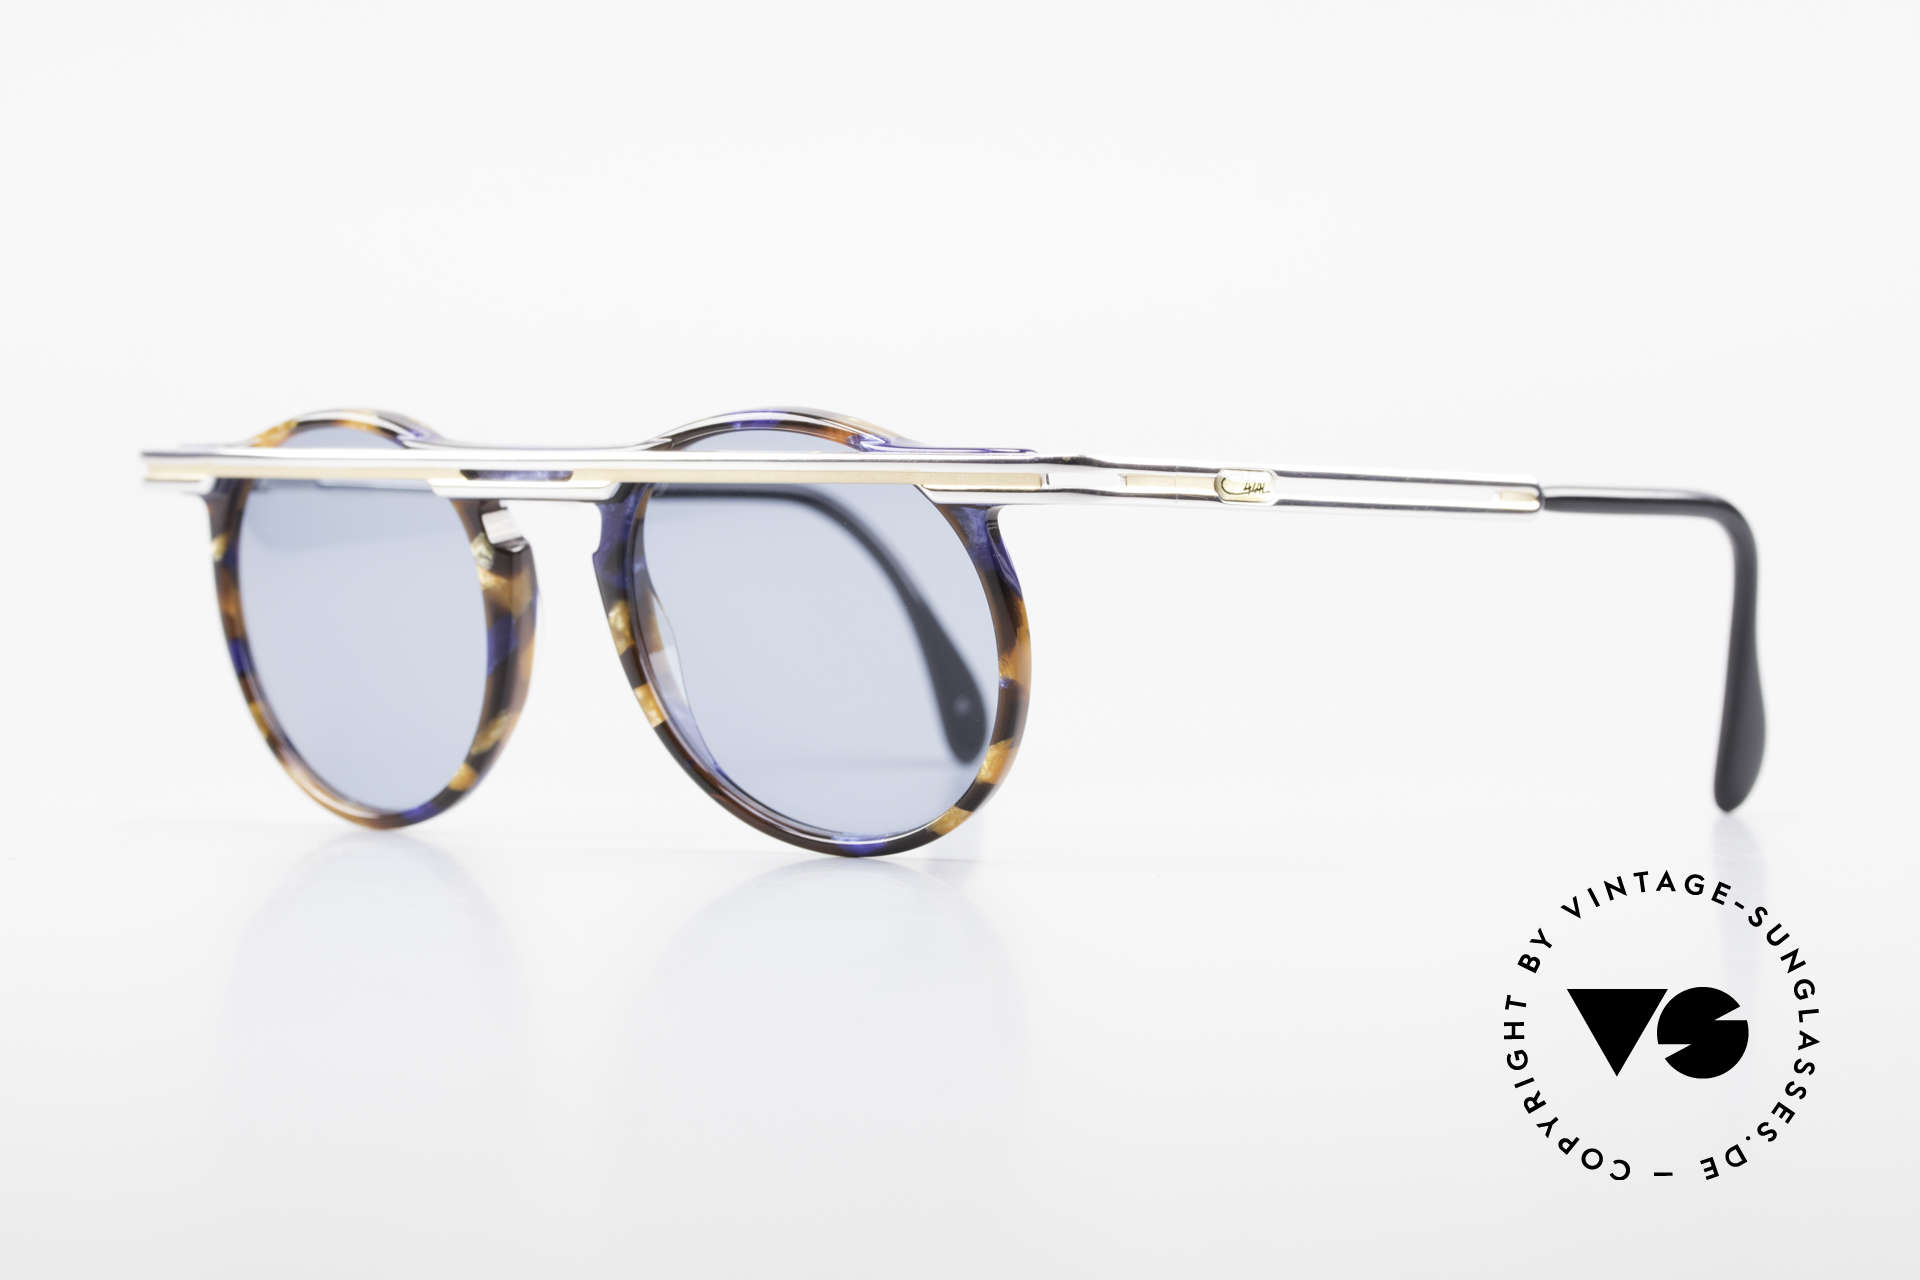 Cazal 648 Old Cari Zalloni Sunglasses, extroverted frame construction with unique coloring, Made for Men and Women